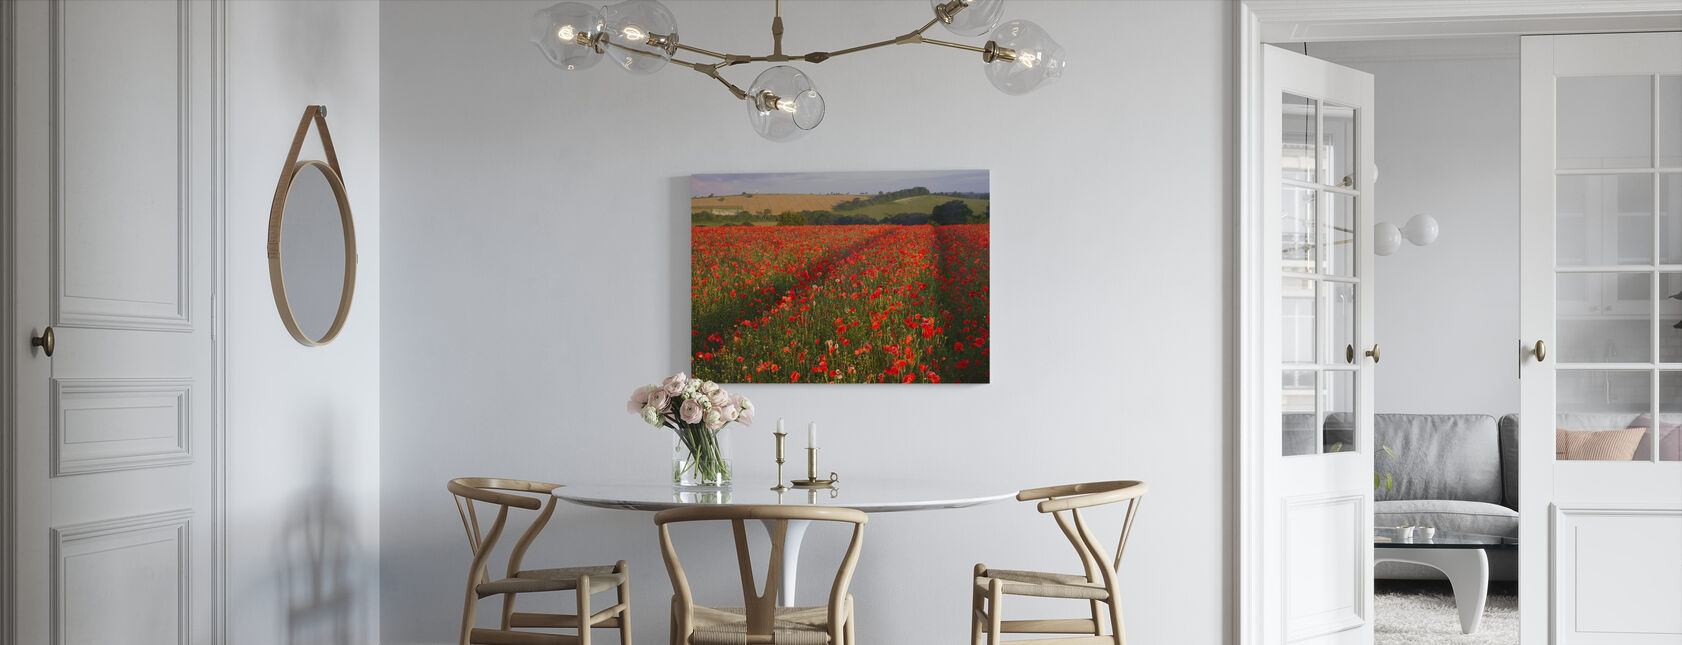 Scarlet Field - Canvas print - Kitchen